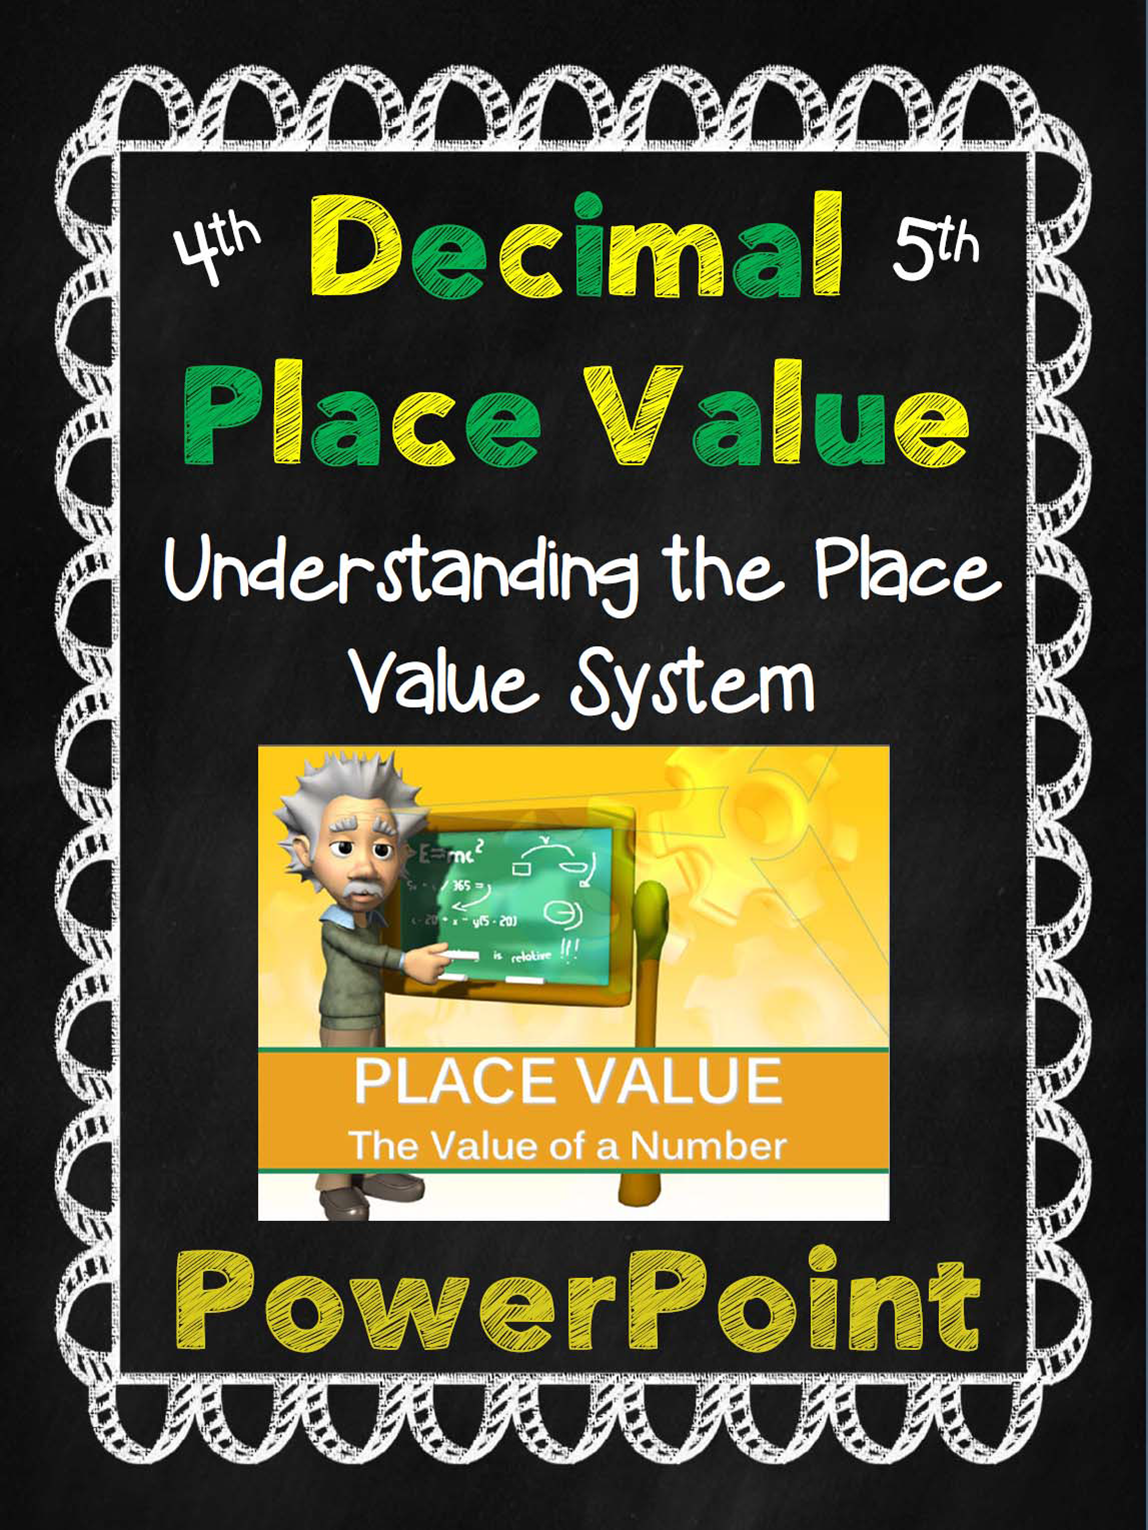 powerpoint on place value